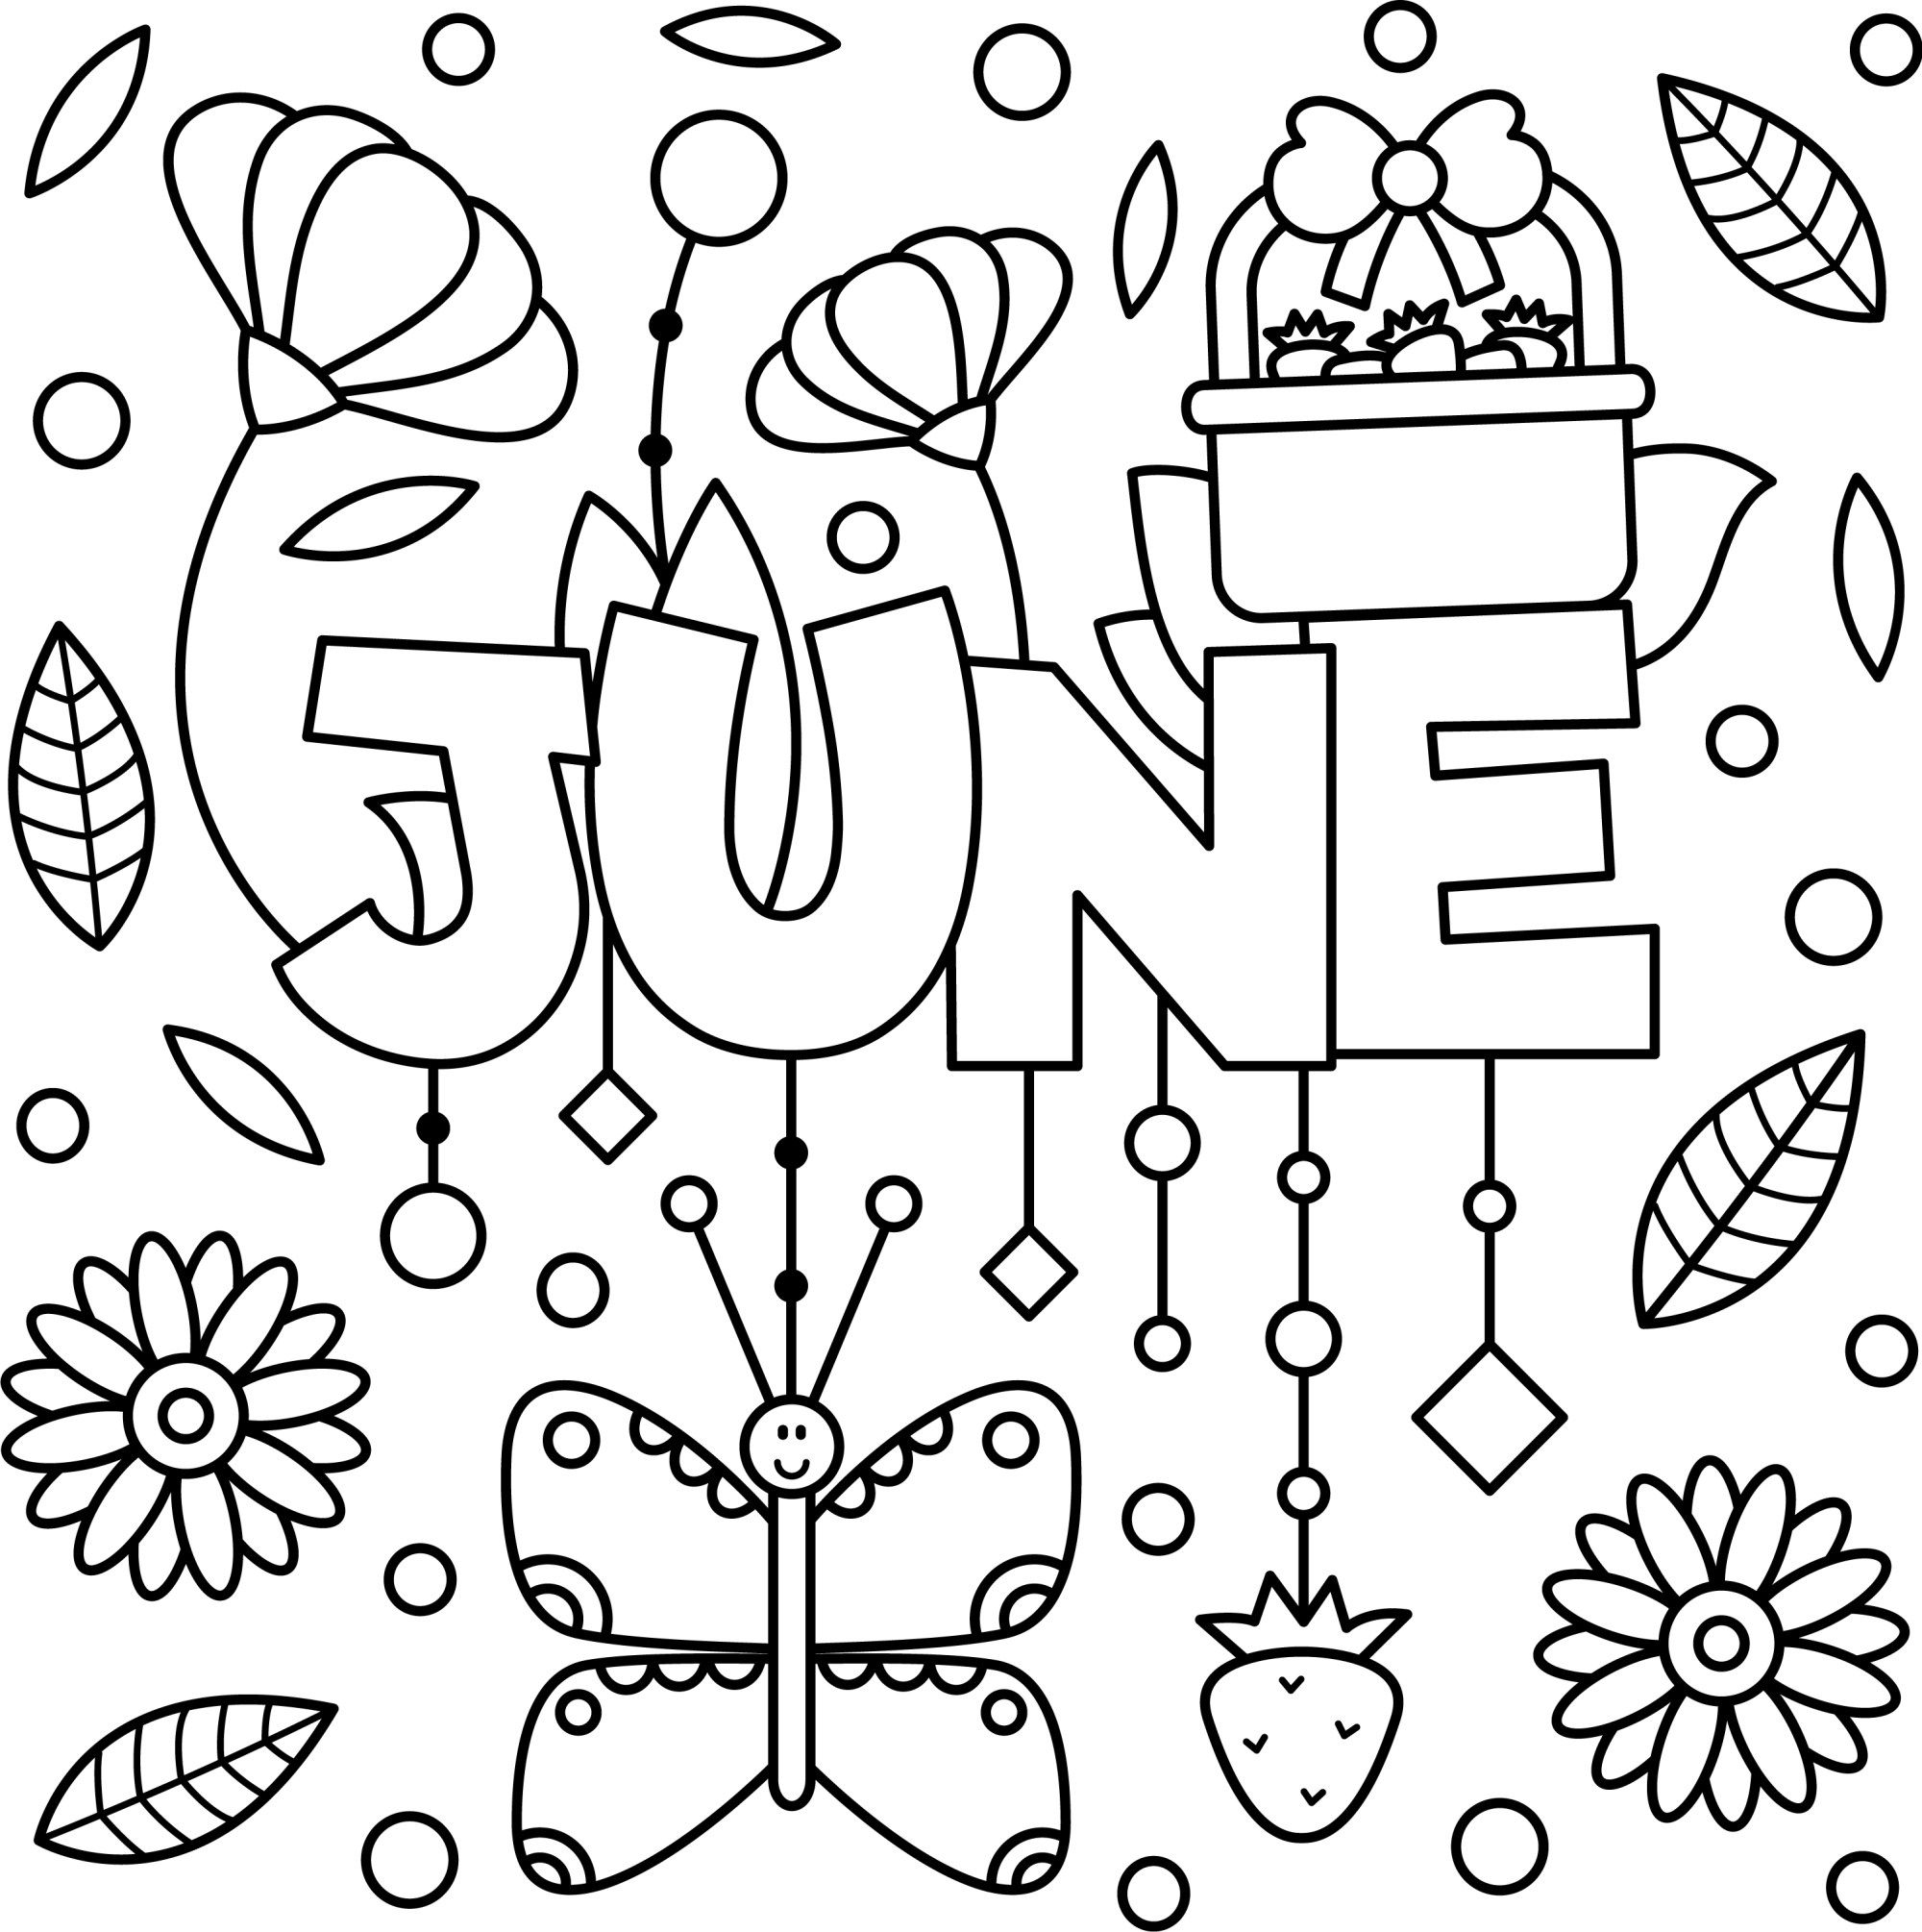 Cheery June Coloring Page Printable Coloring Pages Spring Coloring Pages Coloring Pages For Kids